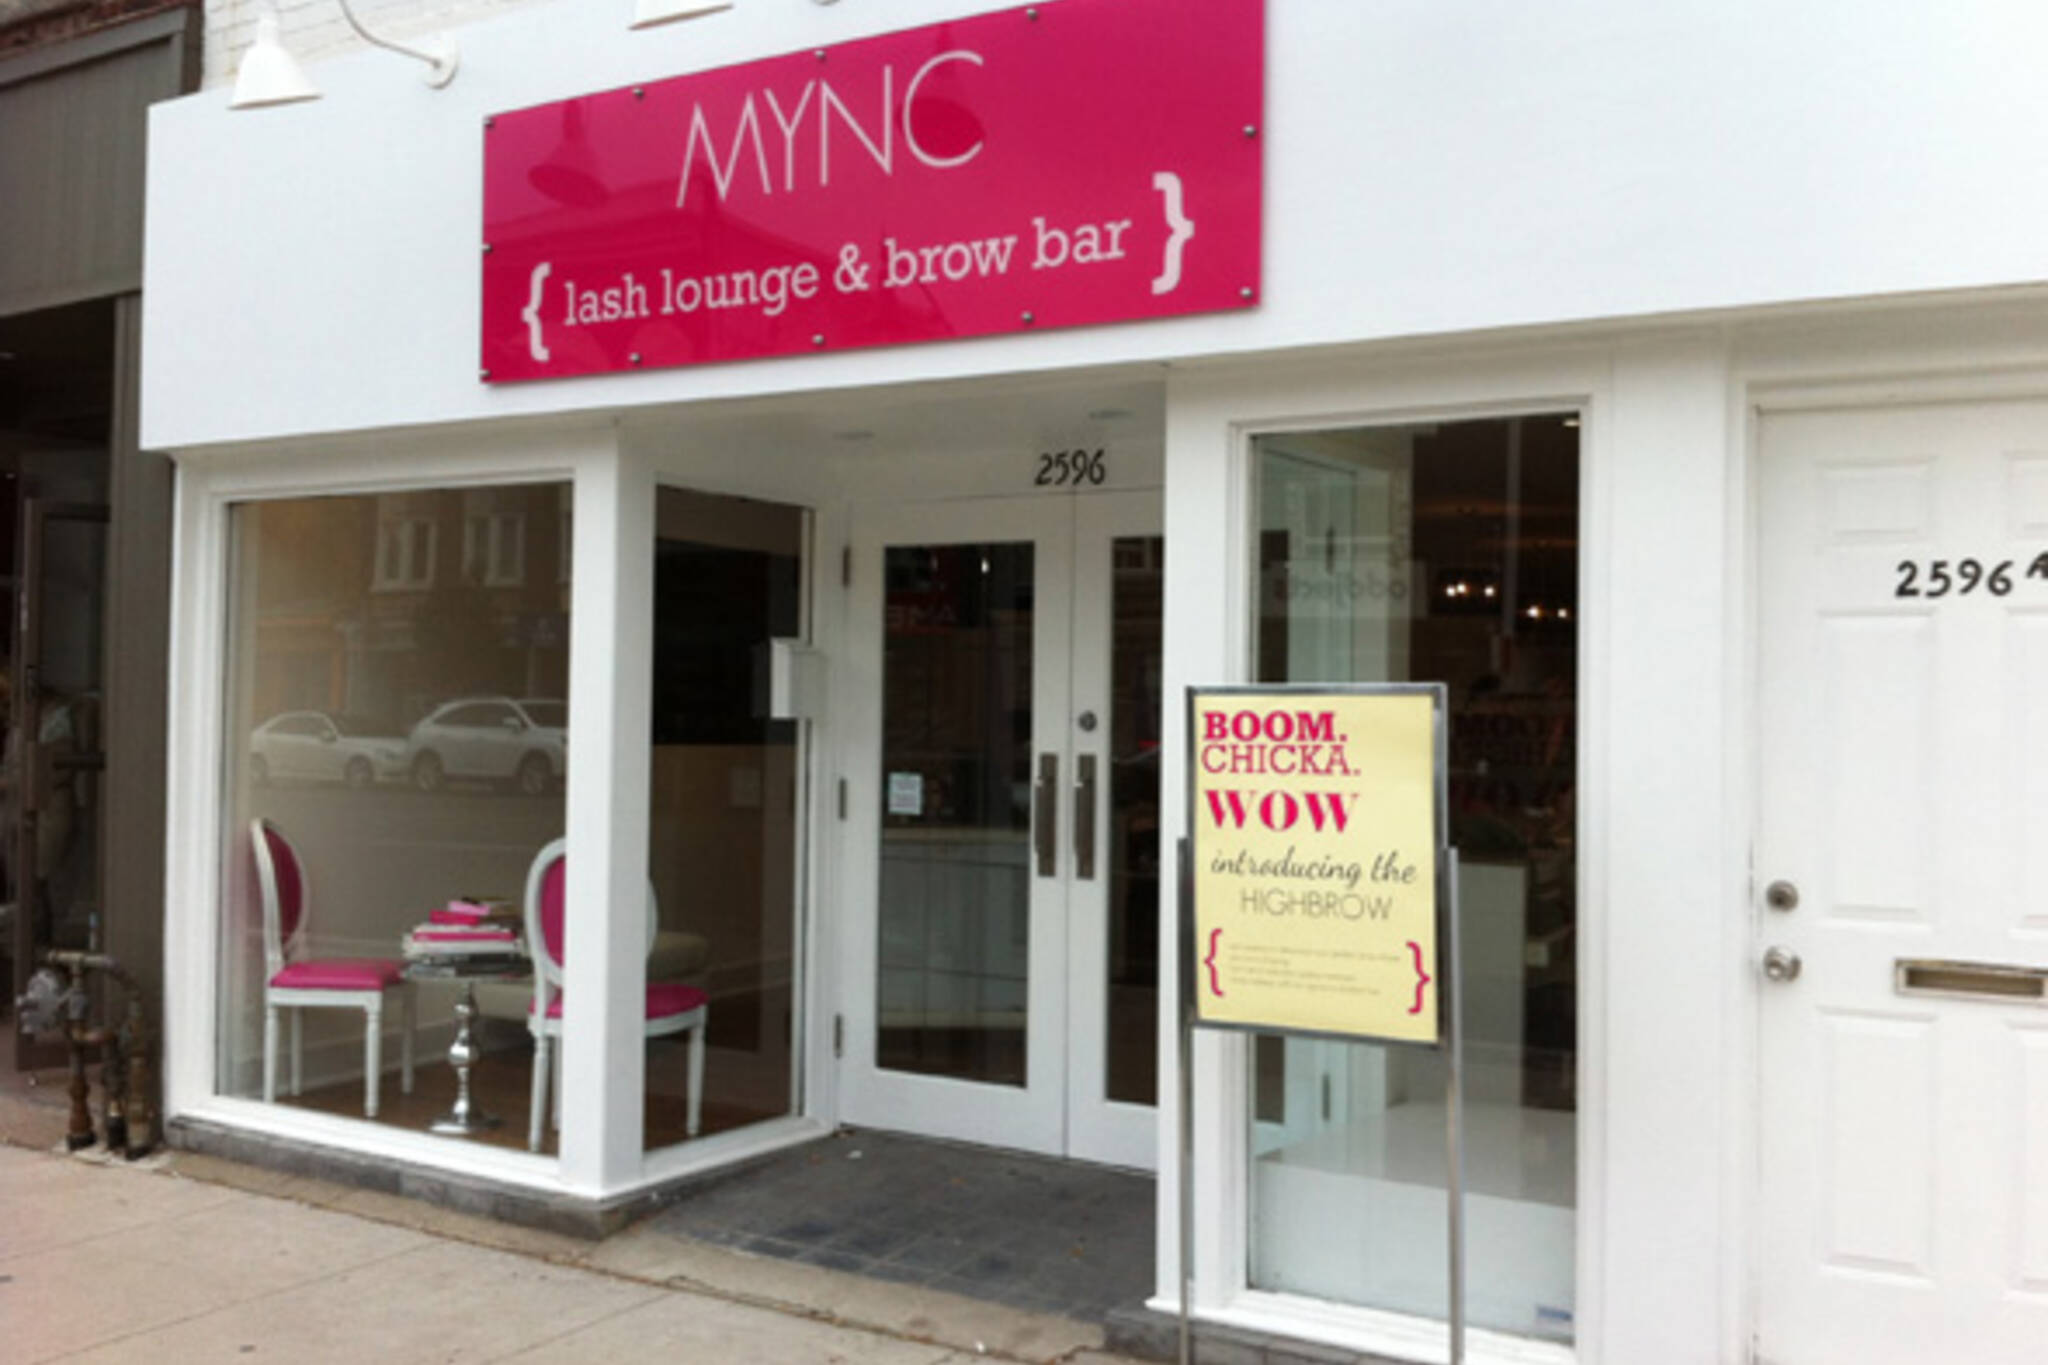 MYNC Lash Lounge & Brow Bar Toronto